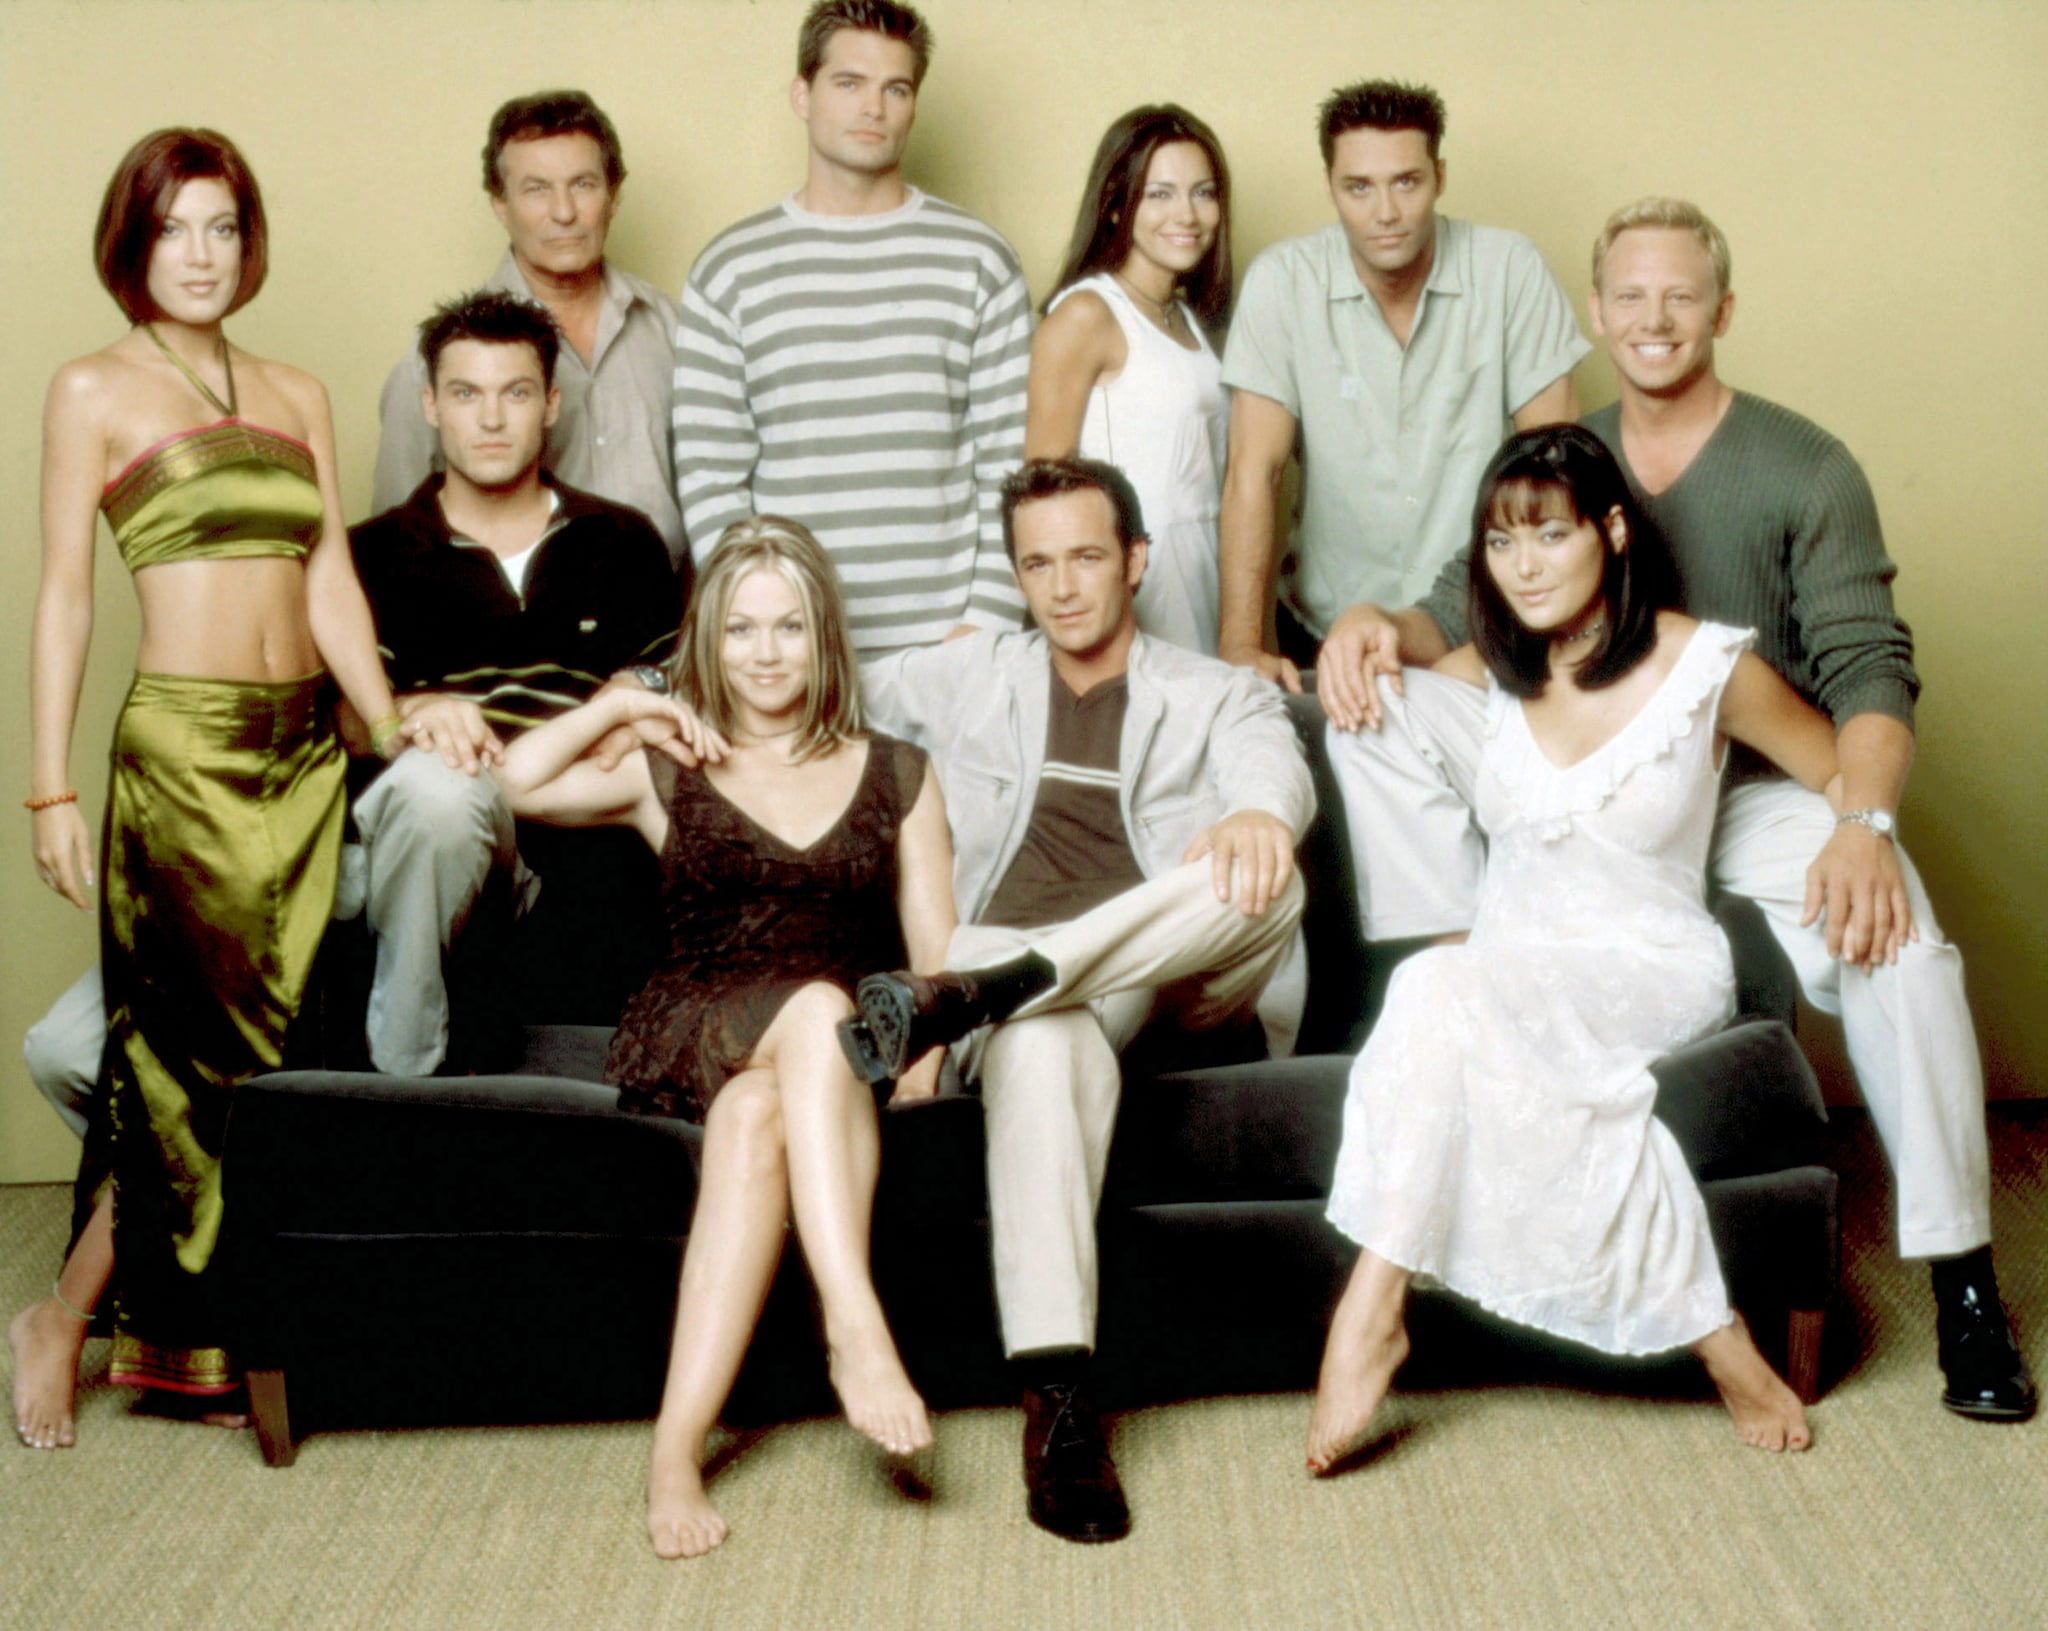 BEVERLY HILLS 90210, (standing, from left): Tori Spelling, Joe E. Tata, Daniel Cosgrove, Vanessa Marcil, Vincent Young, (sitting): Brian Austin Green, Jennie Garth, Luke Perry, Lindsay Price, (1999), 1990-2000. photo: George Lange /  Aaron Spelling Prod. / Courtesy: Everett Collectiona